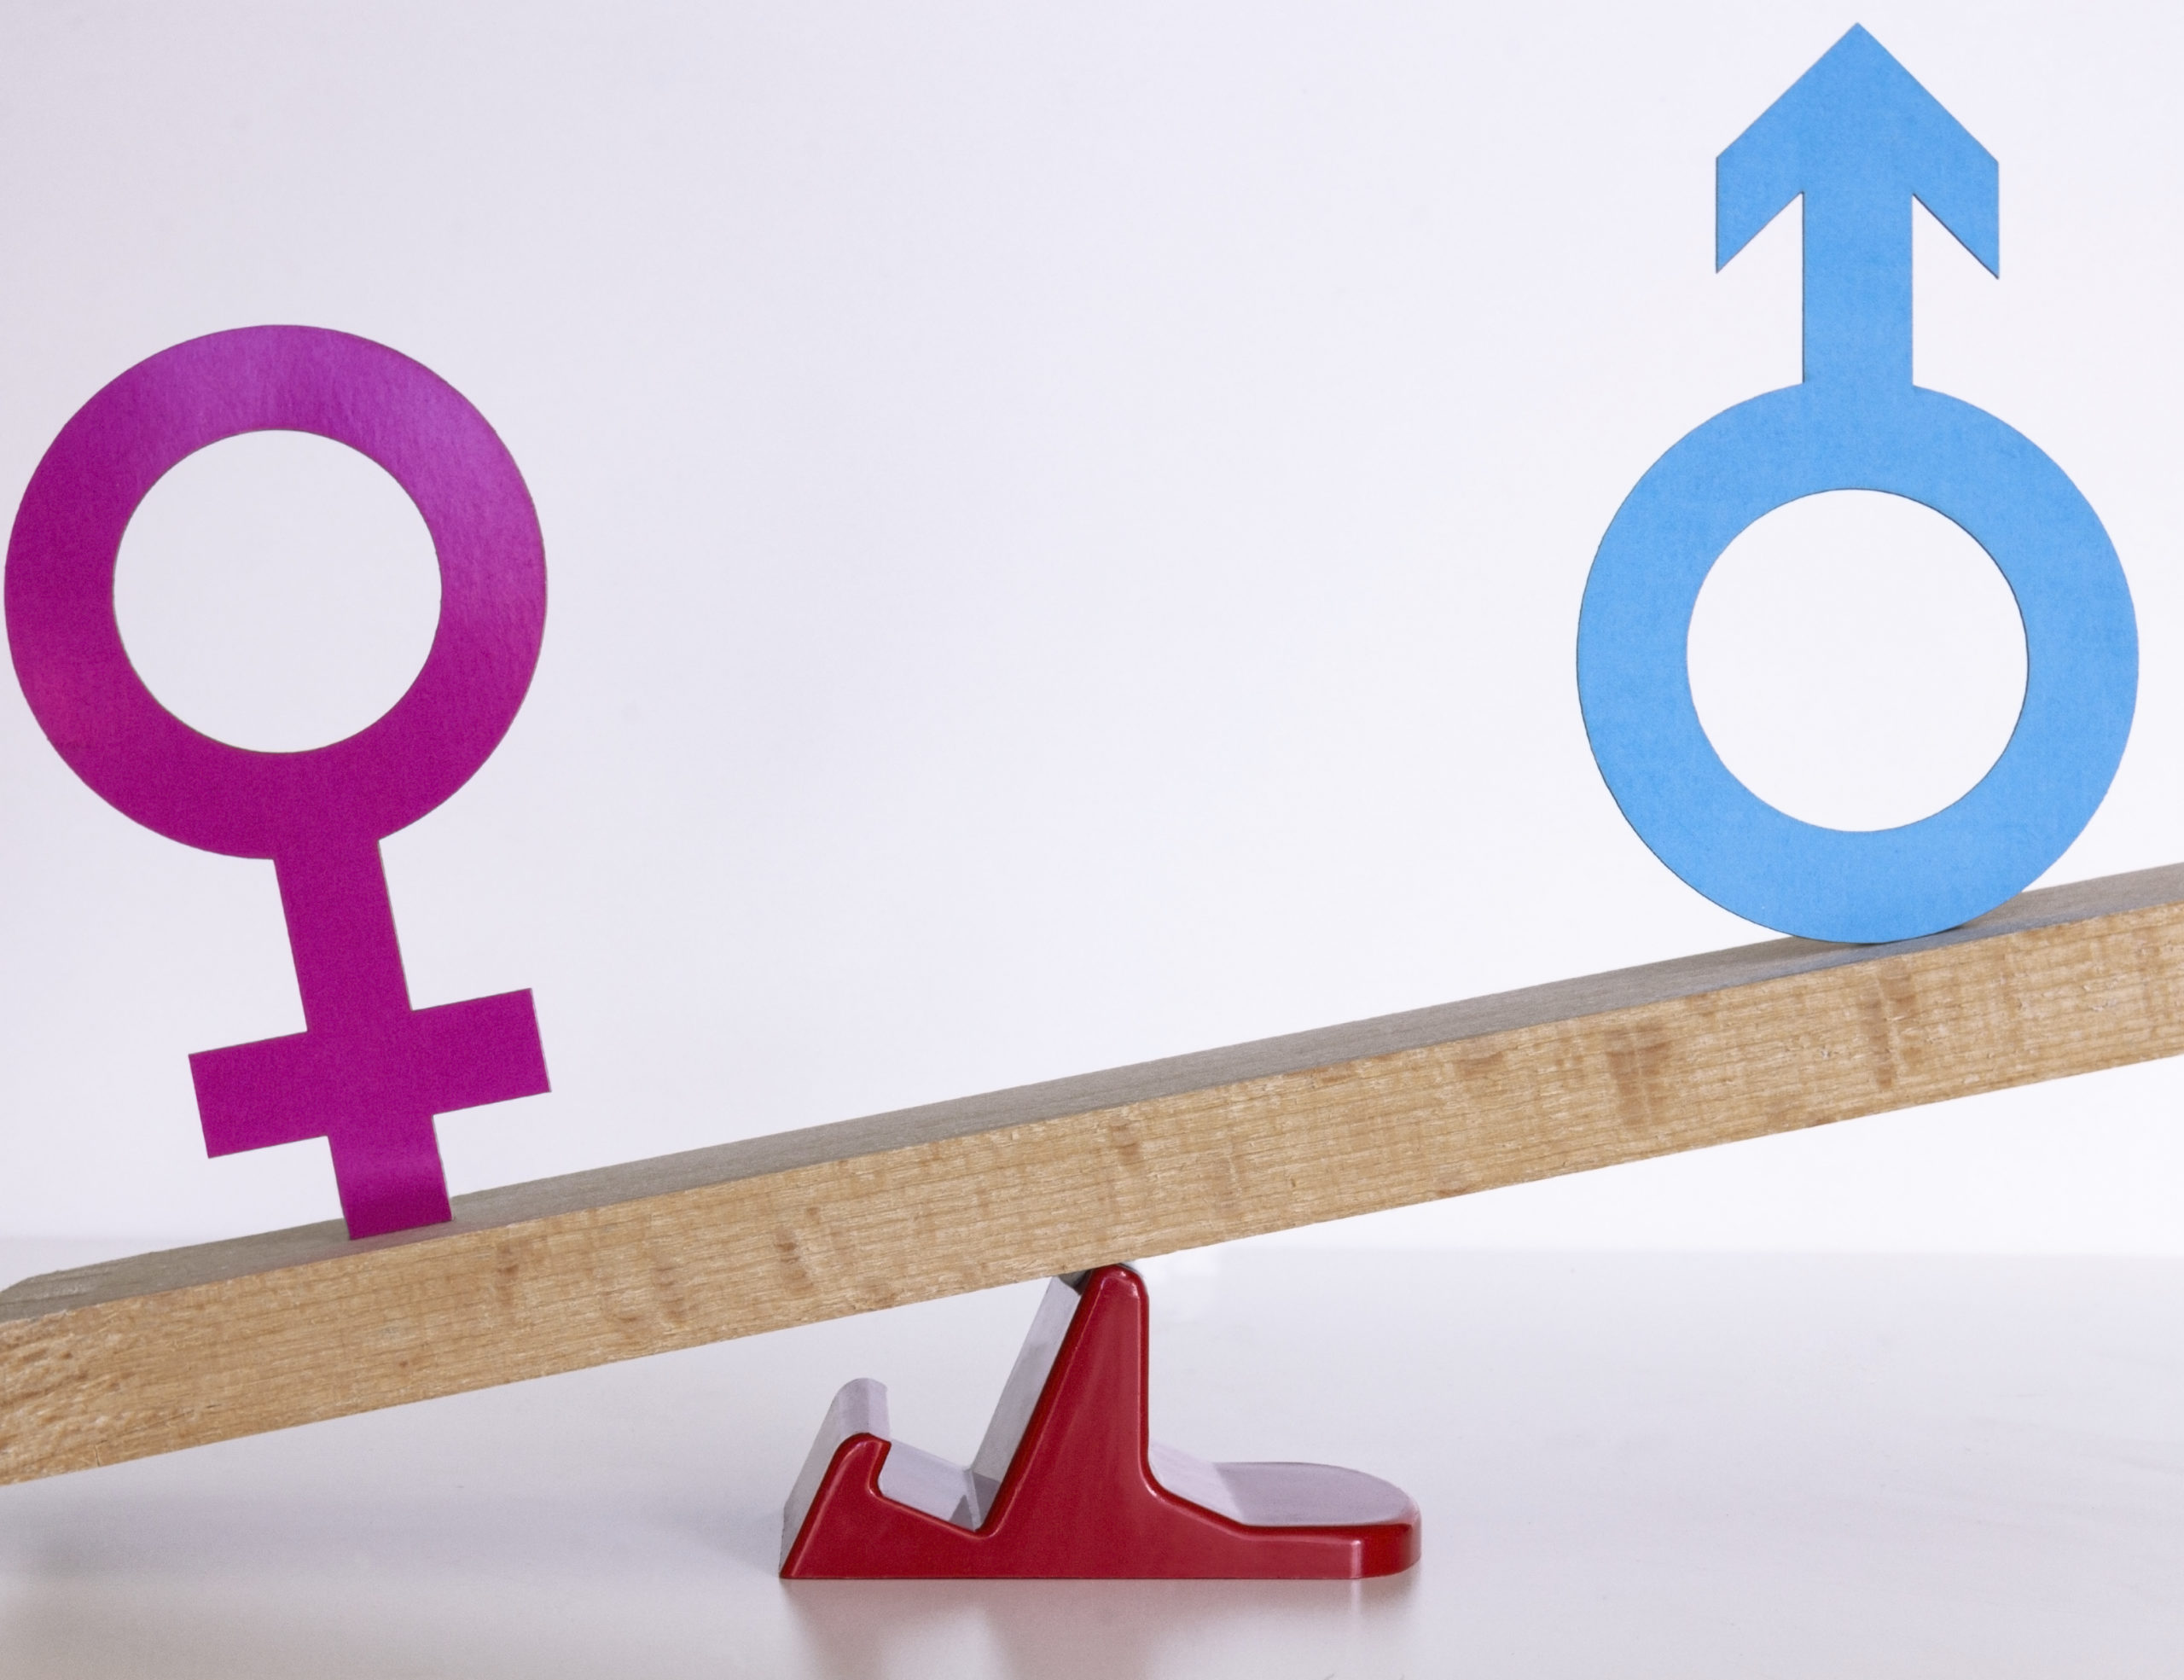 Campaign urges firms to report gender pay gaps sooner and better